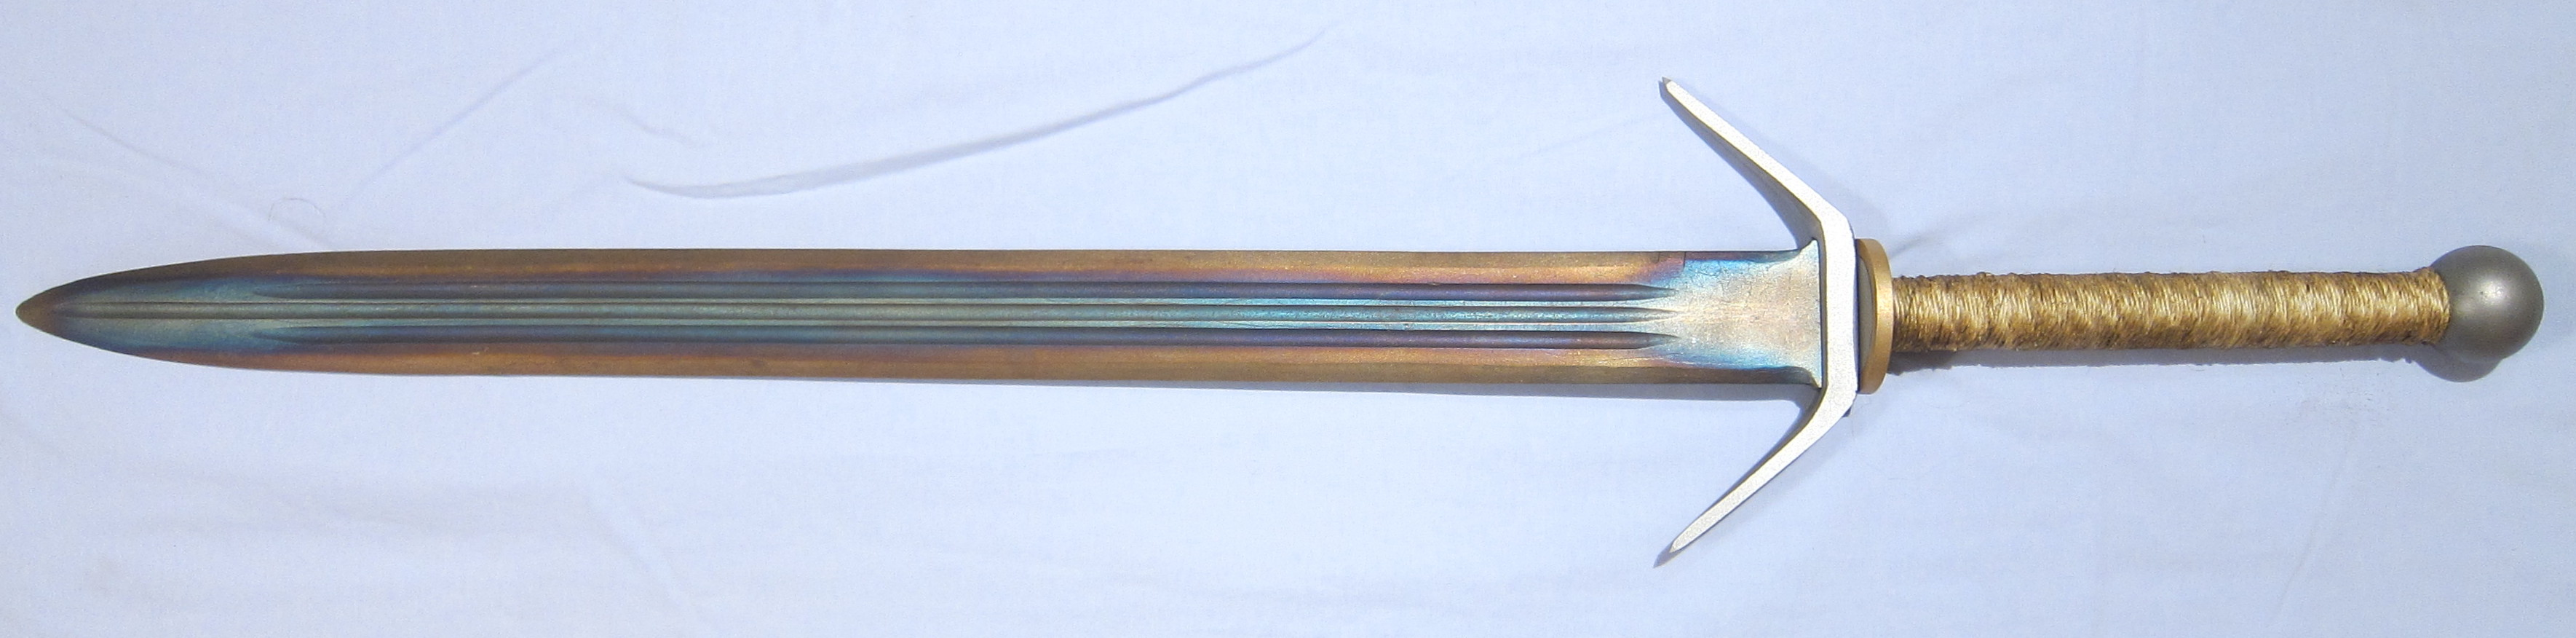 Differential tempered sword. Taken from wikimedia commons